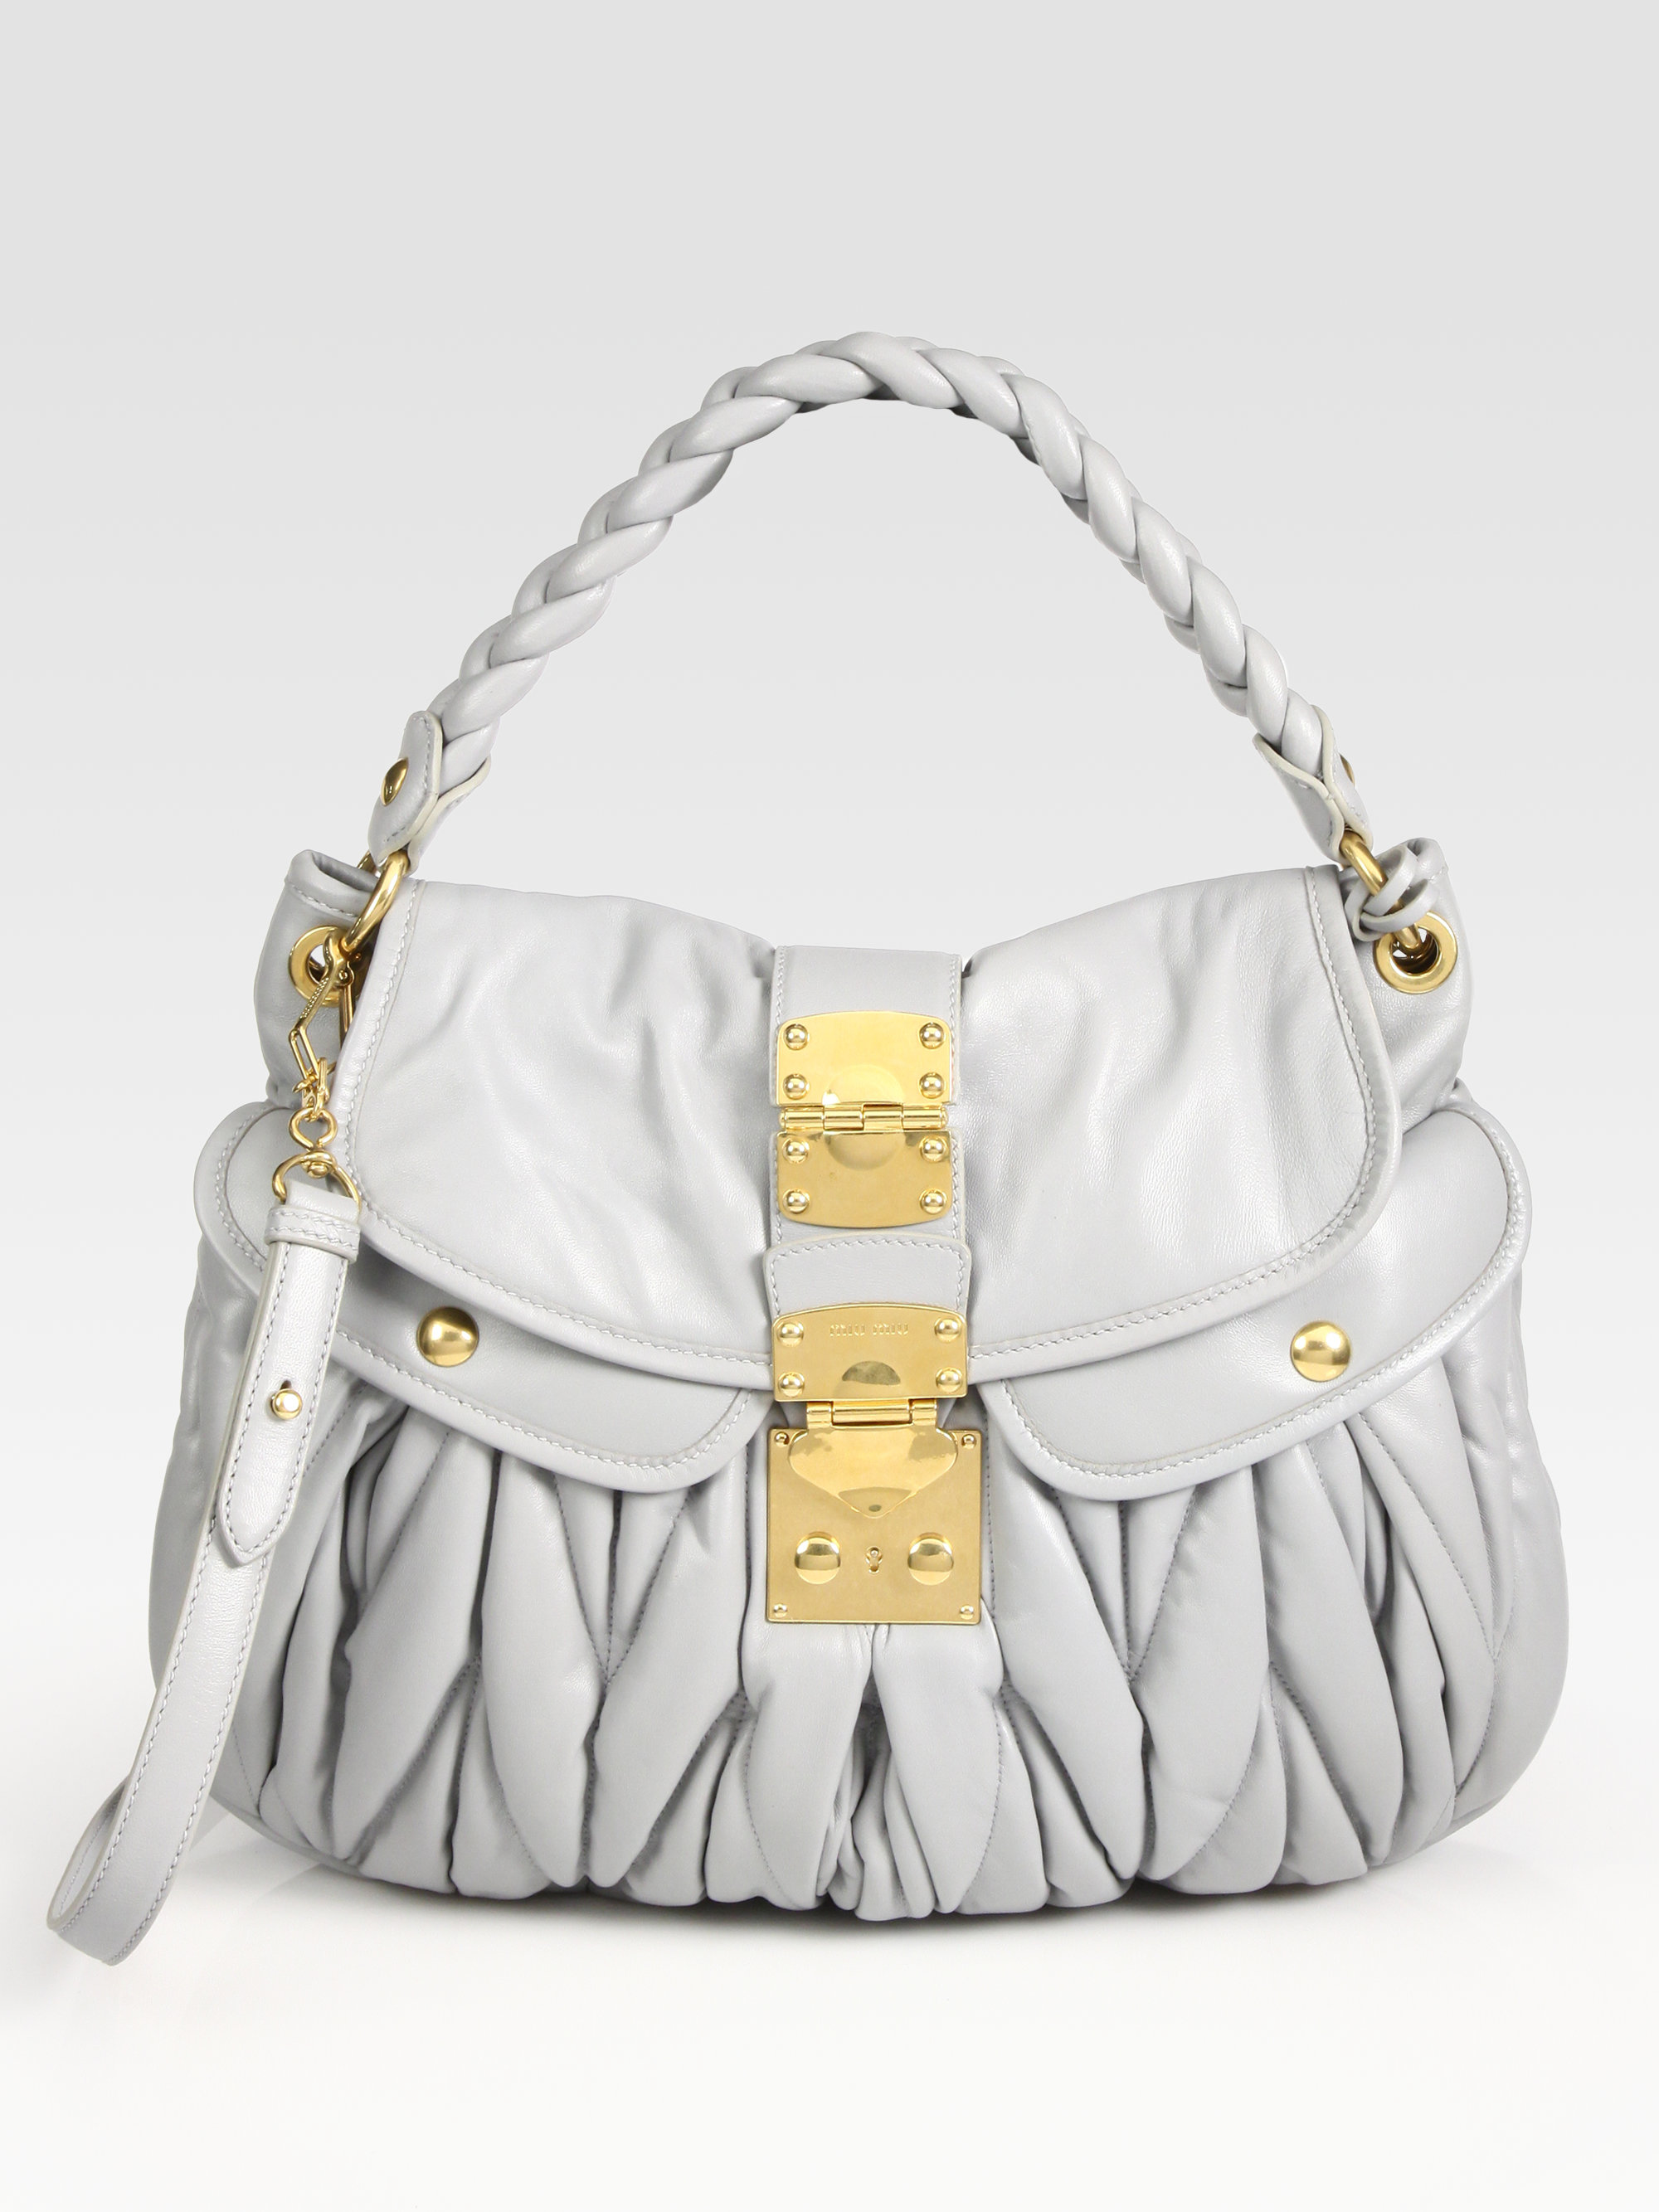 571c73587f1f Gallery. Previously sold at  Saks Fifth Avenue · Women s Miu Miu Shoulder  Bag ...